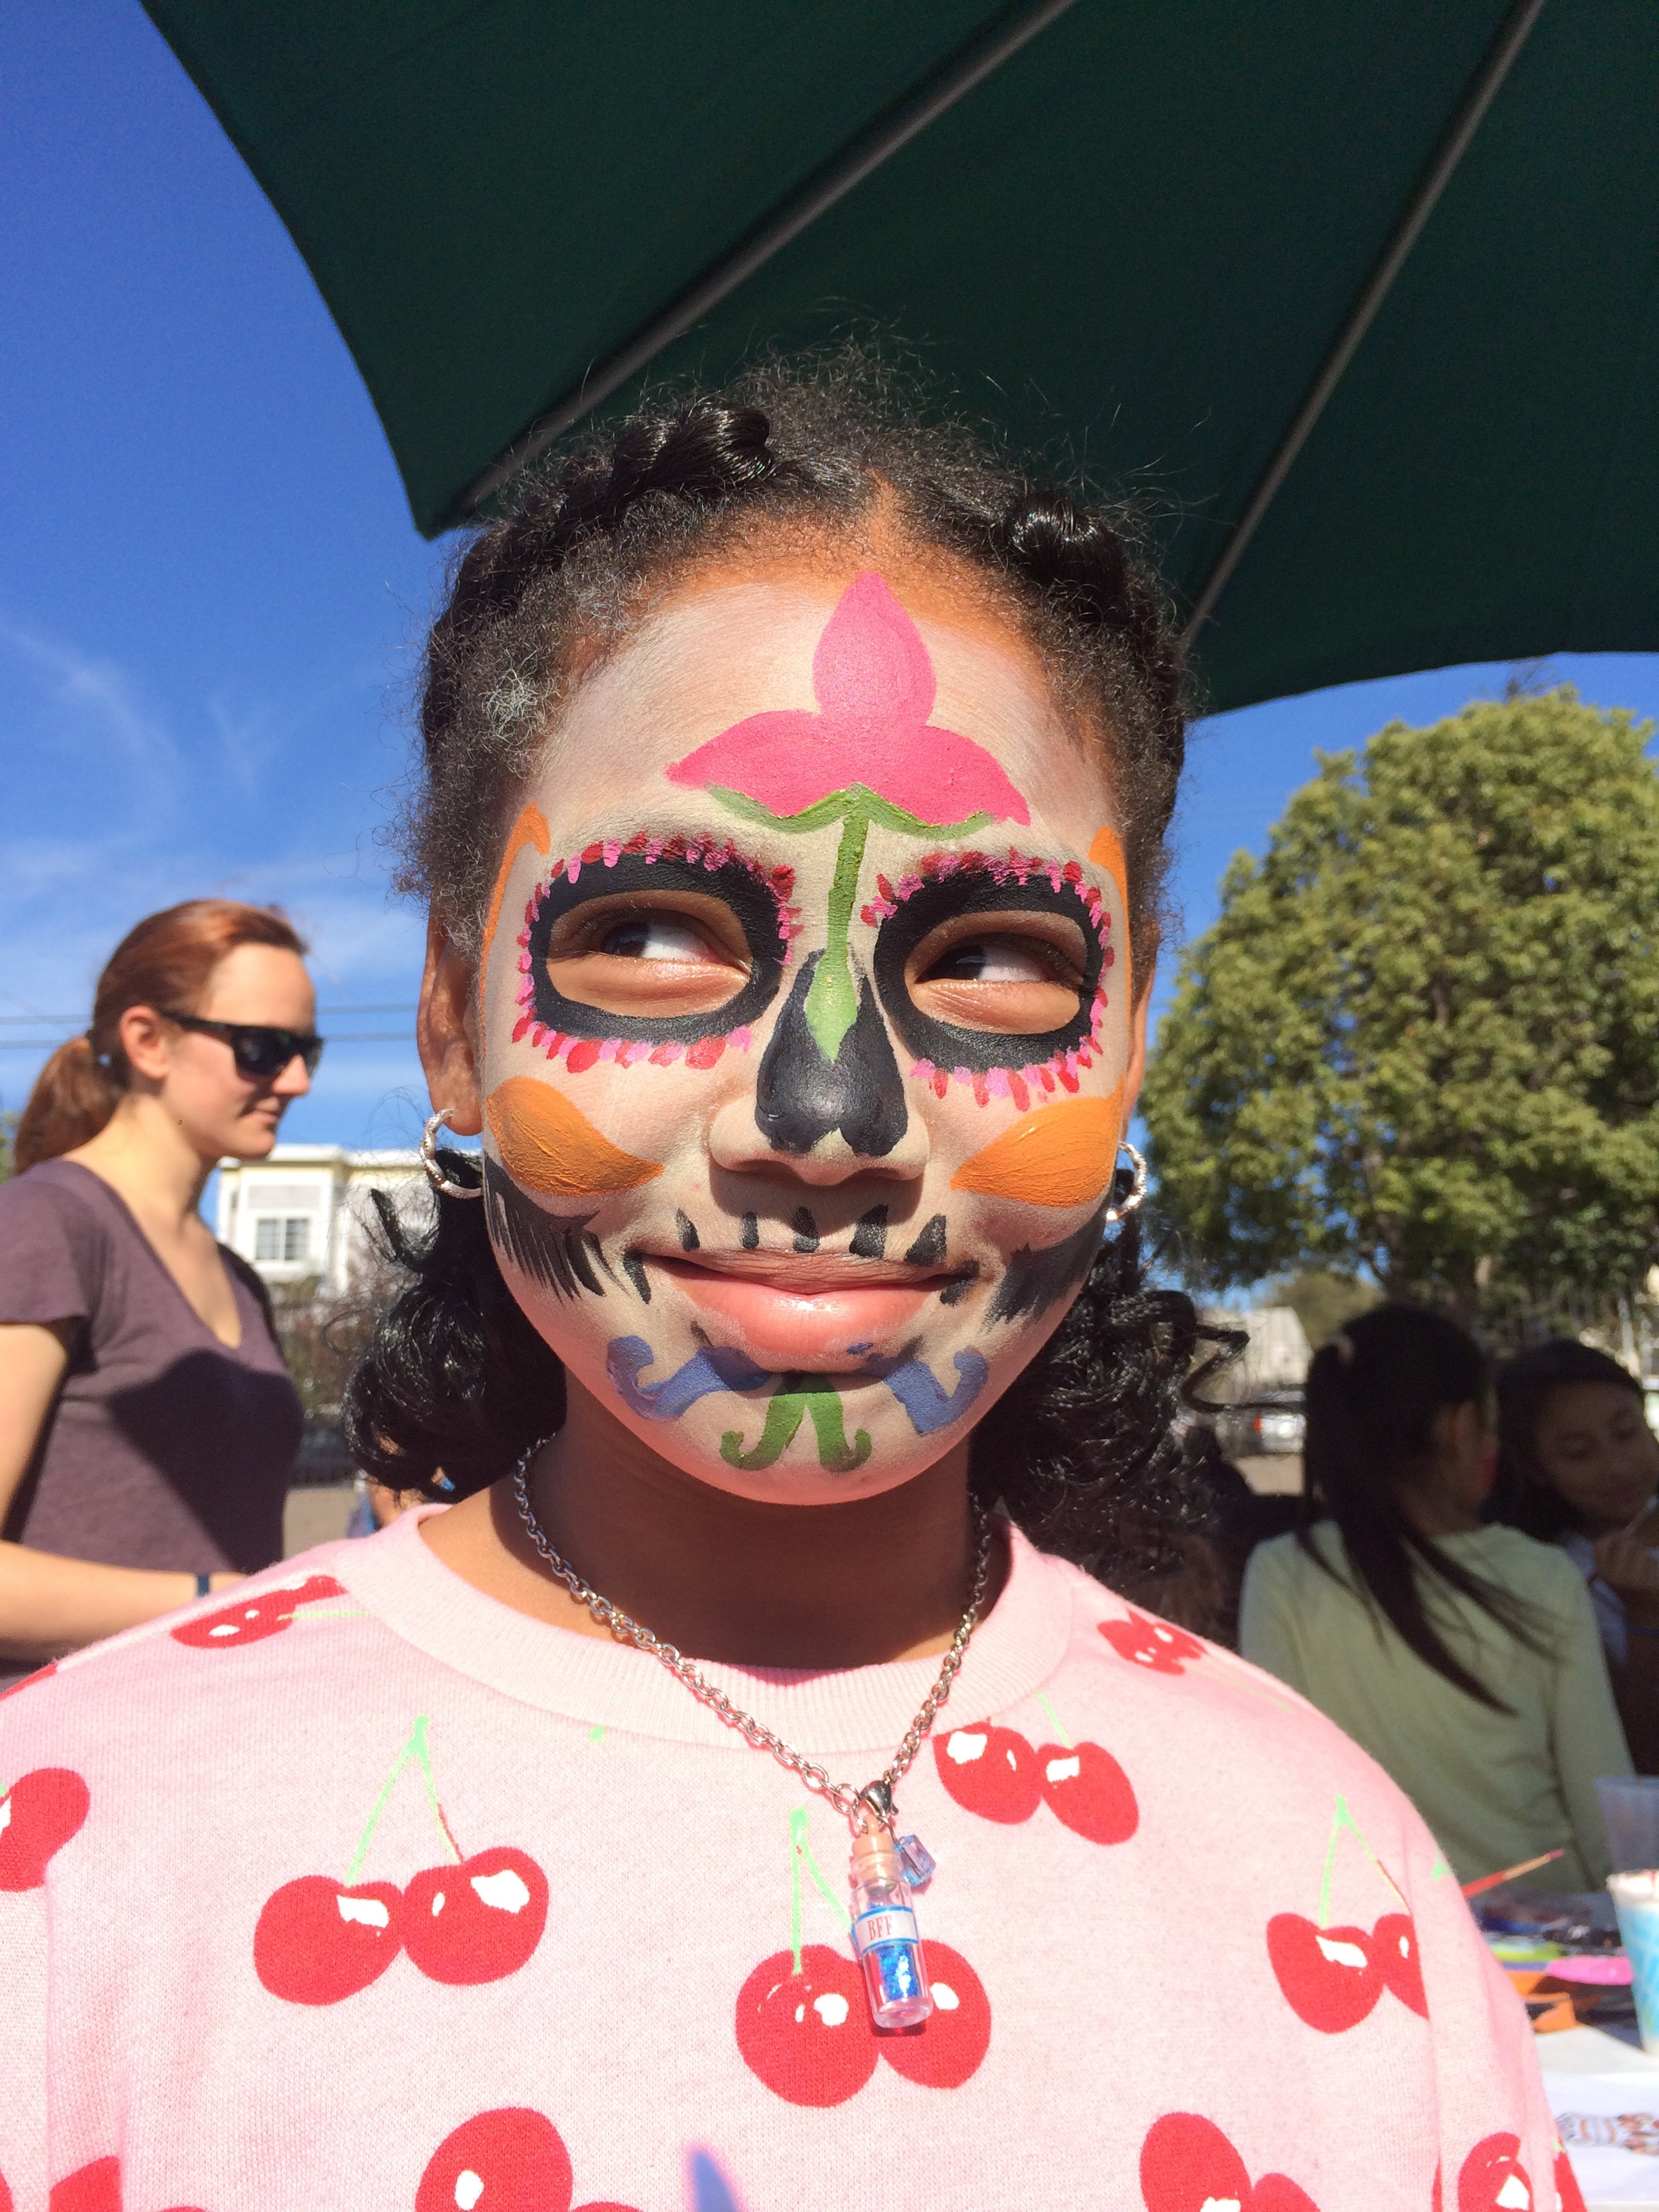 One of our students overjoyed with her beautiful face painting design at the Harvest Festival.